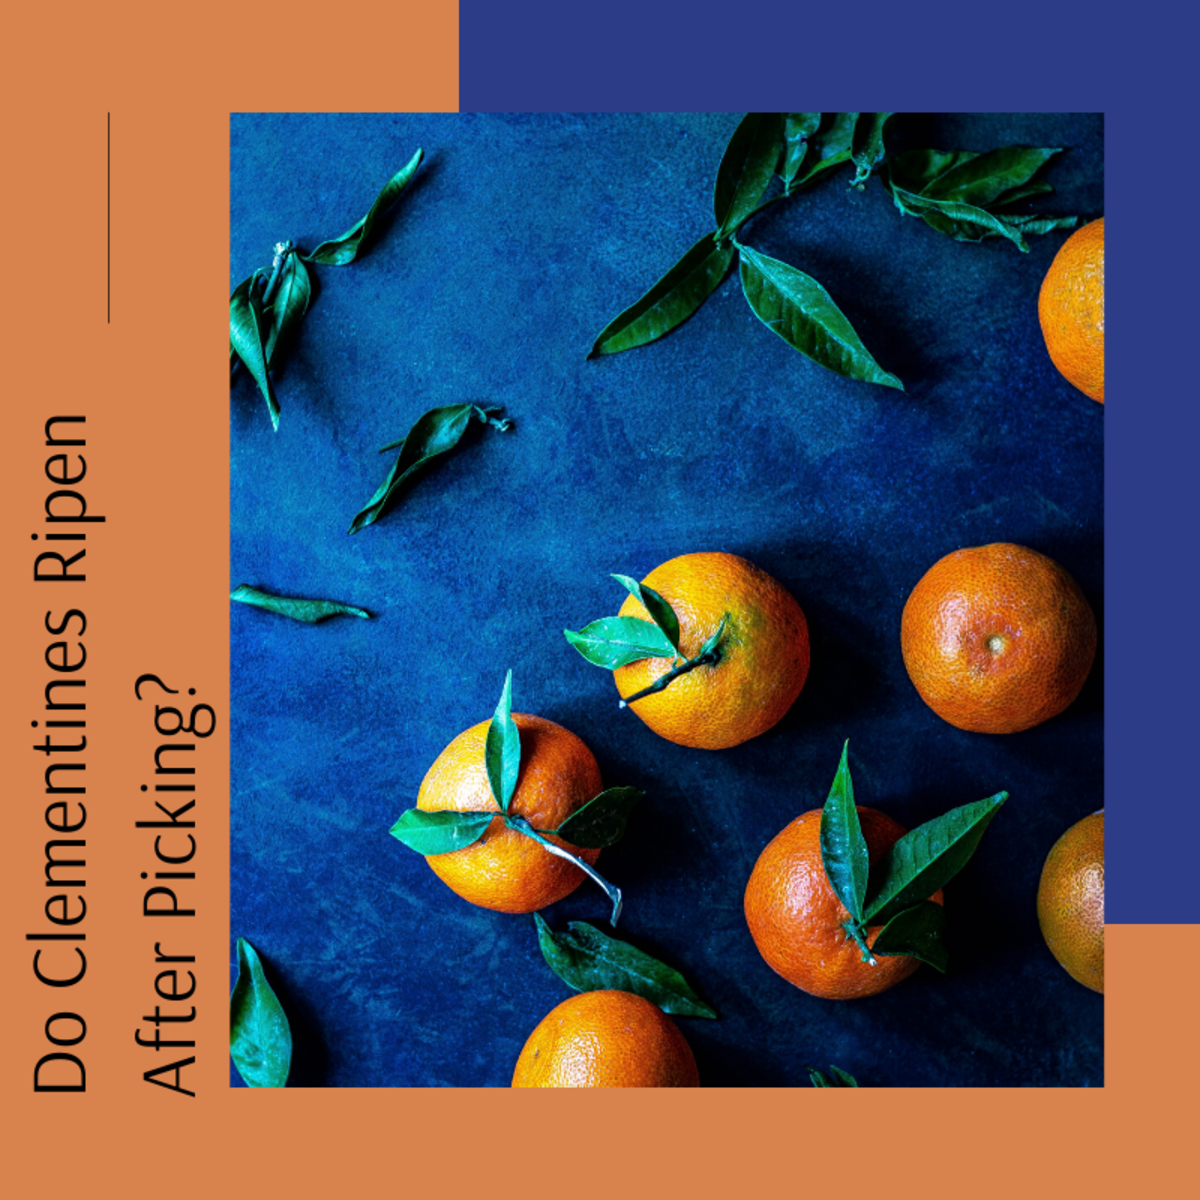 Do Clementines Ripen After Picking?